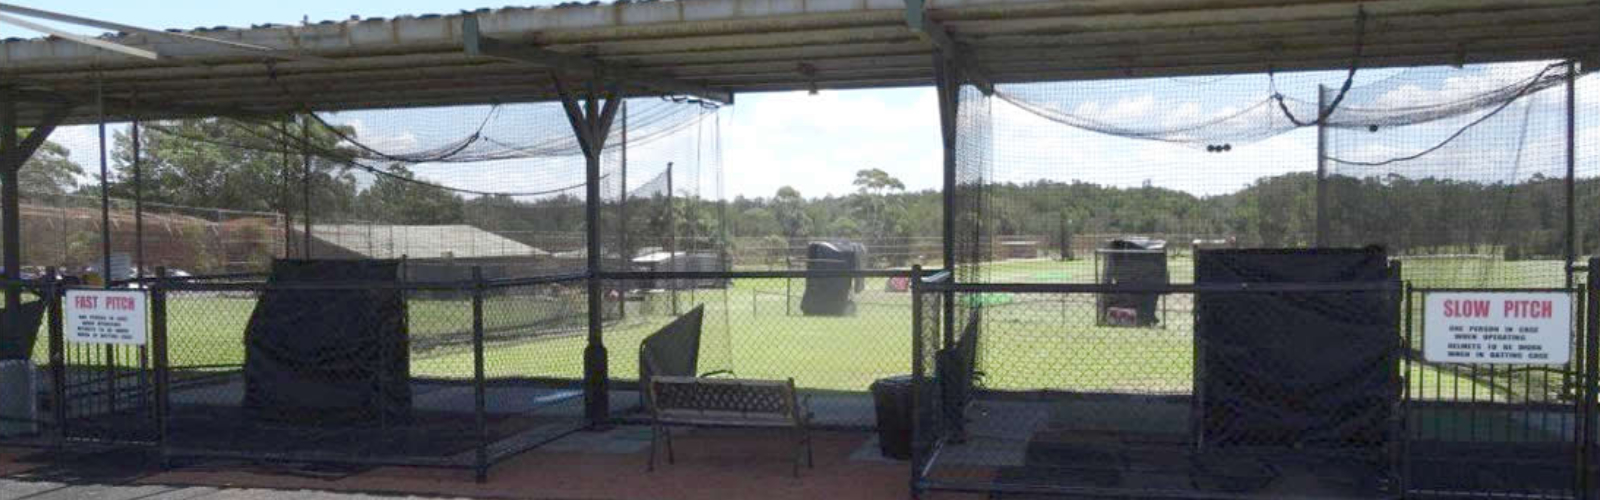 batting-cages1